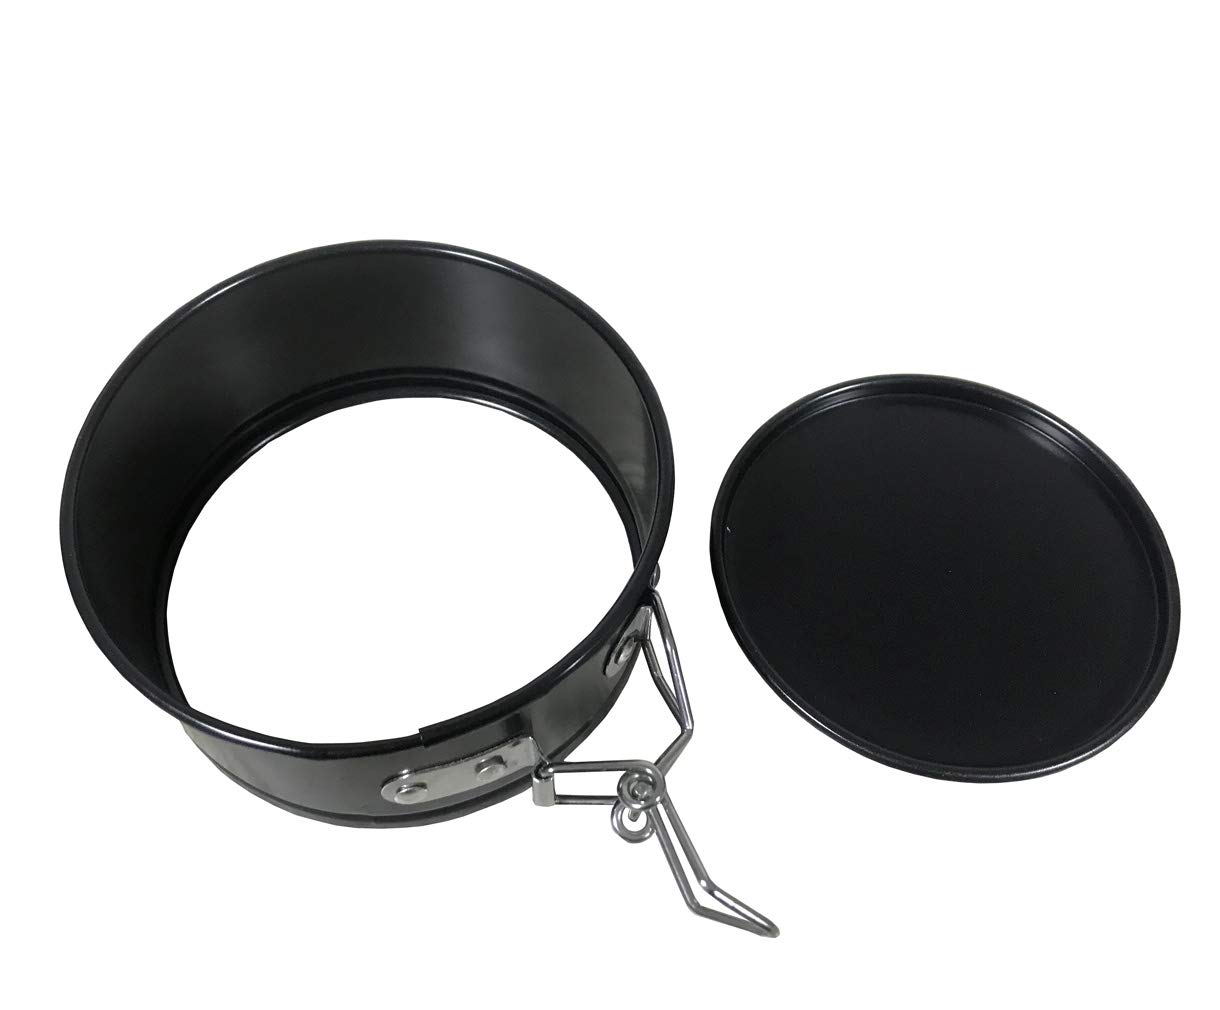 3 Pieces//Set Cake Pan 4 Inch 7 Inch 9 Inch Non-Stick Leakproof Round Cake Pan Springform with Removable Bottom Cake Pan for Instantpot Pressure Cooker or Oven